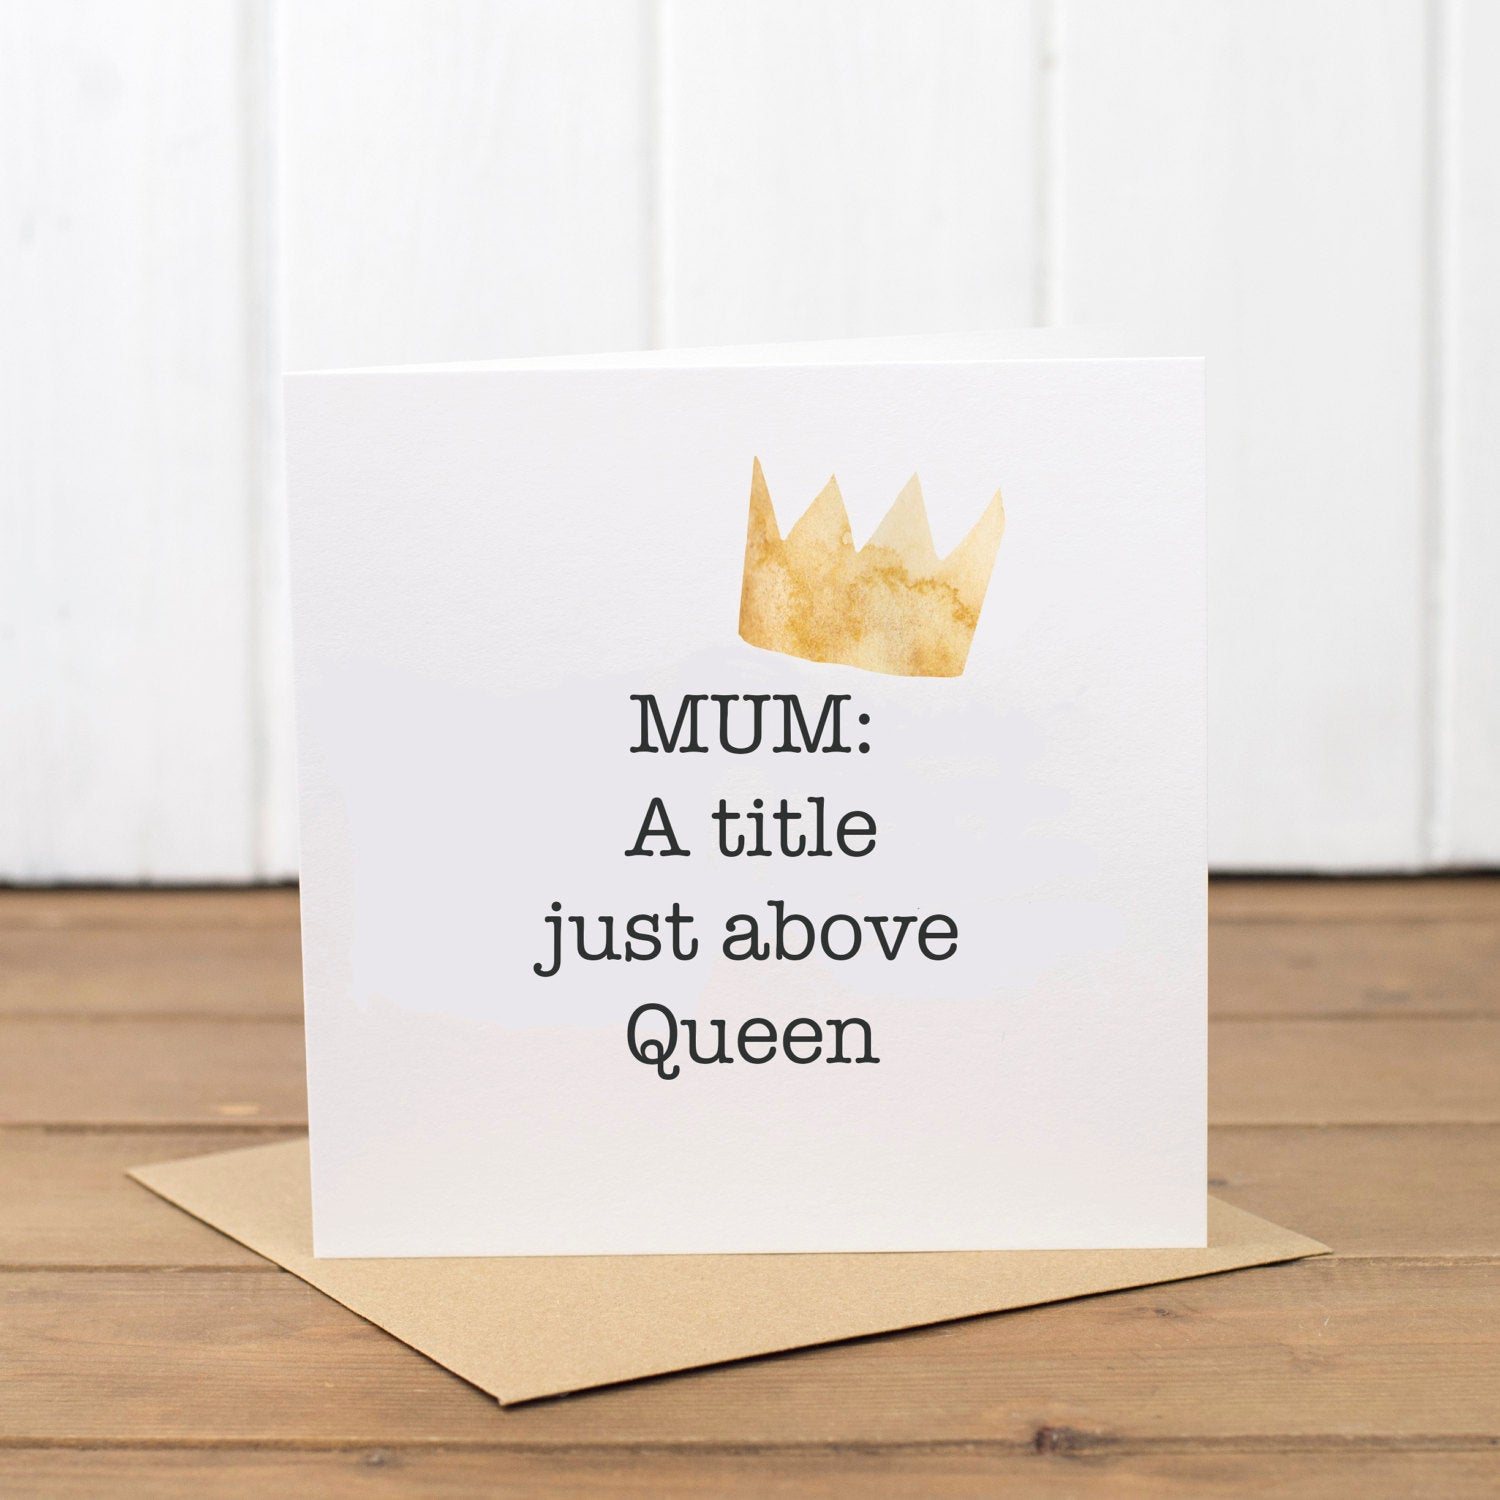 Queen Mum Birthday Card - Yellowstone Art Boutique